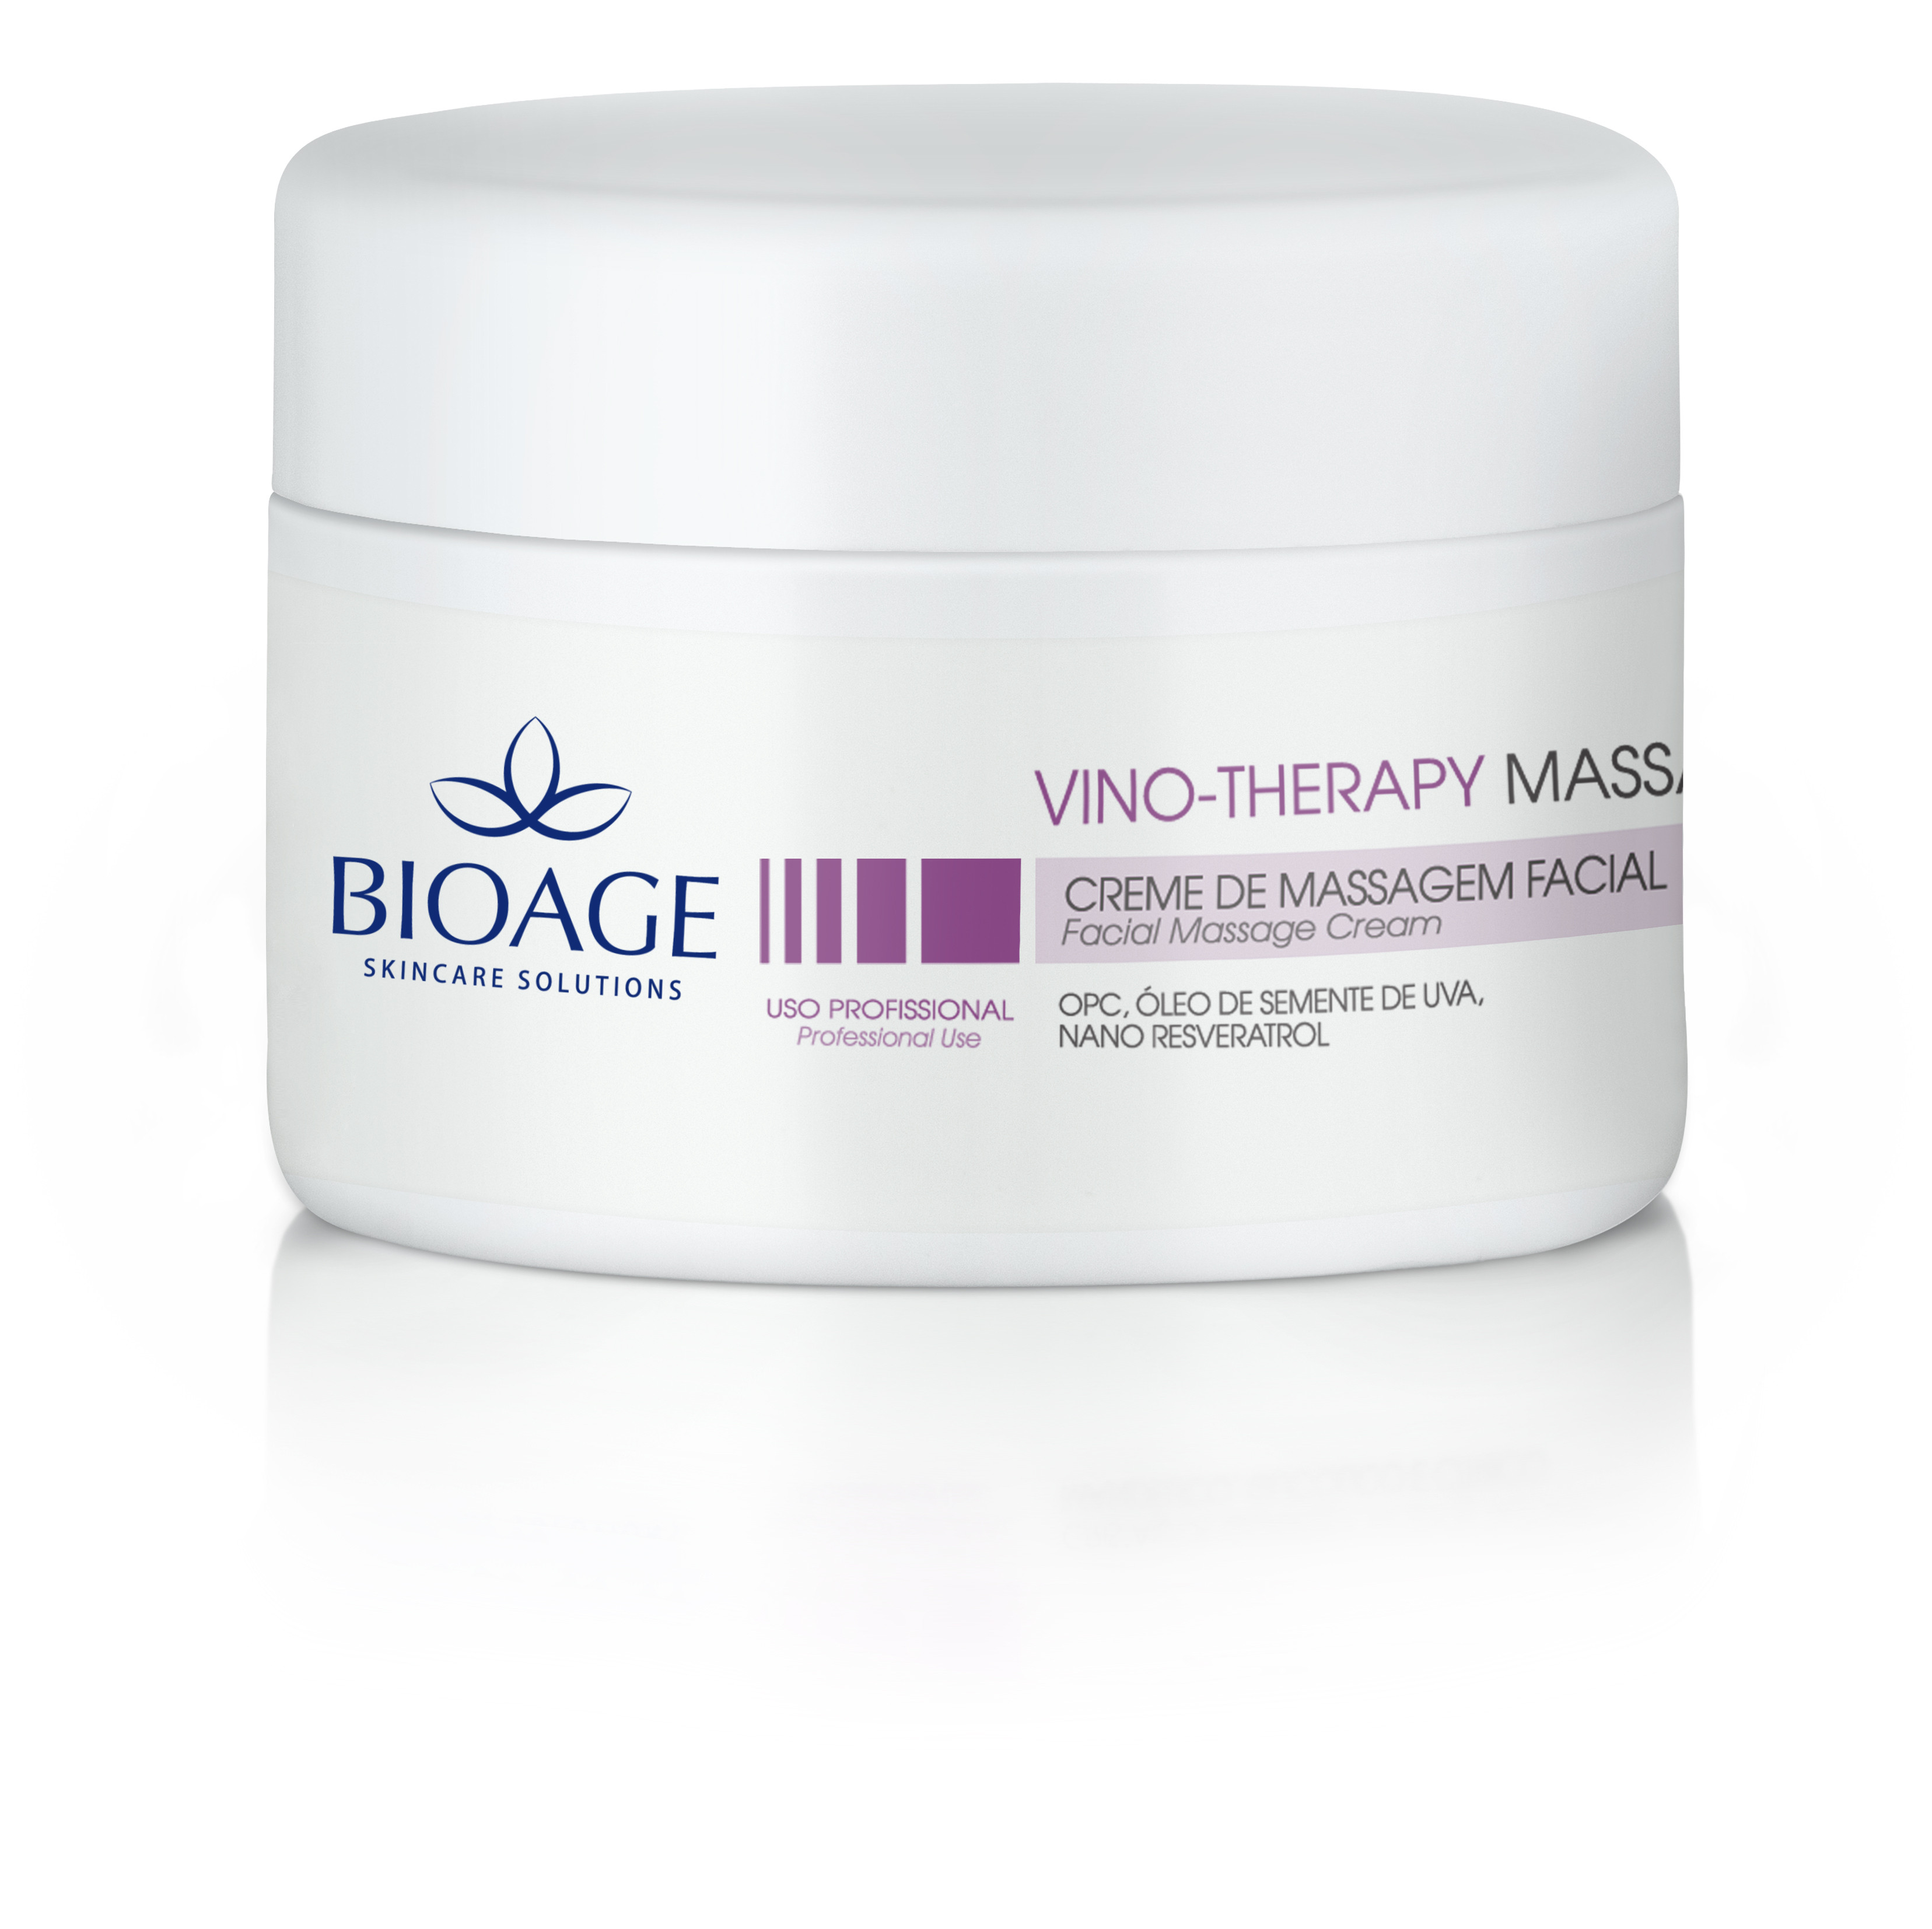 VINO-THERAPY CREME DE MASSAGEM (FACIAL) - 60G